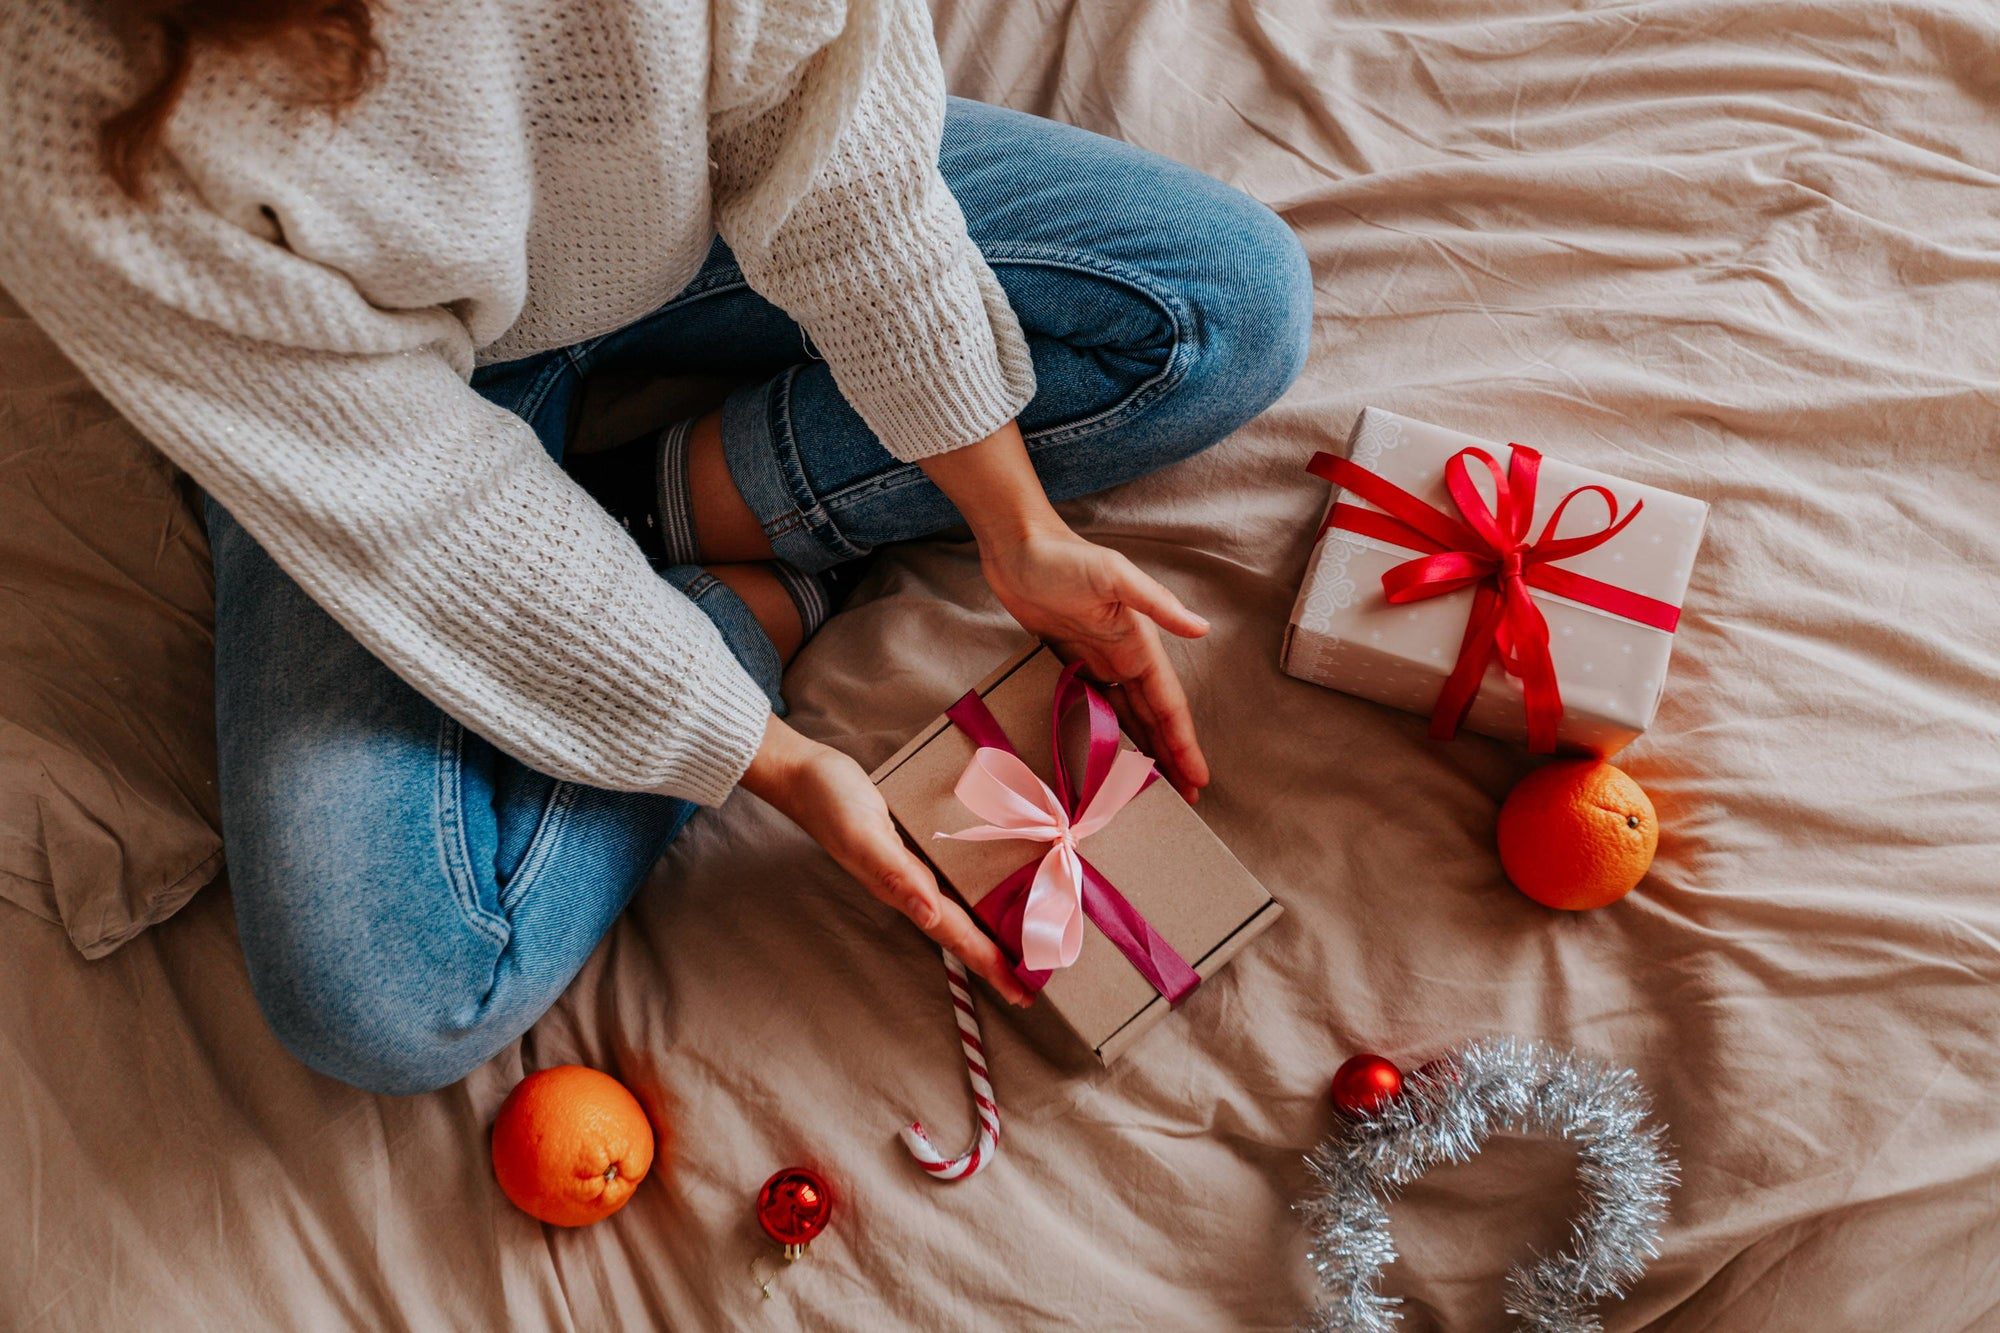 Part 1: 5 Self-Care Gift Ideas in 5 Minutes